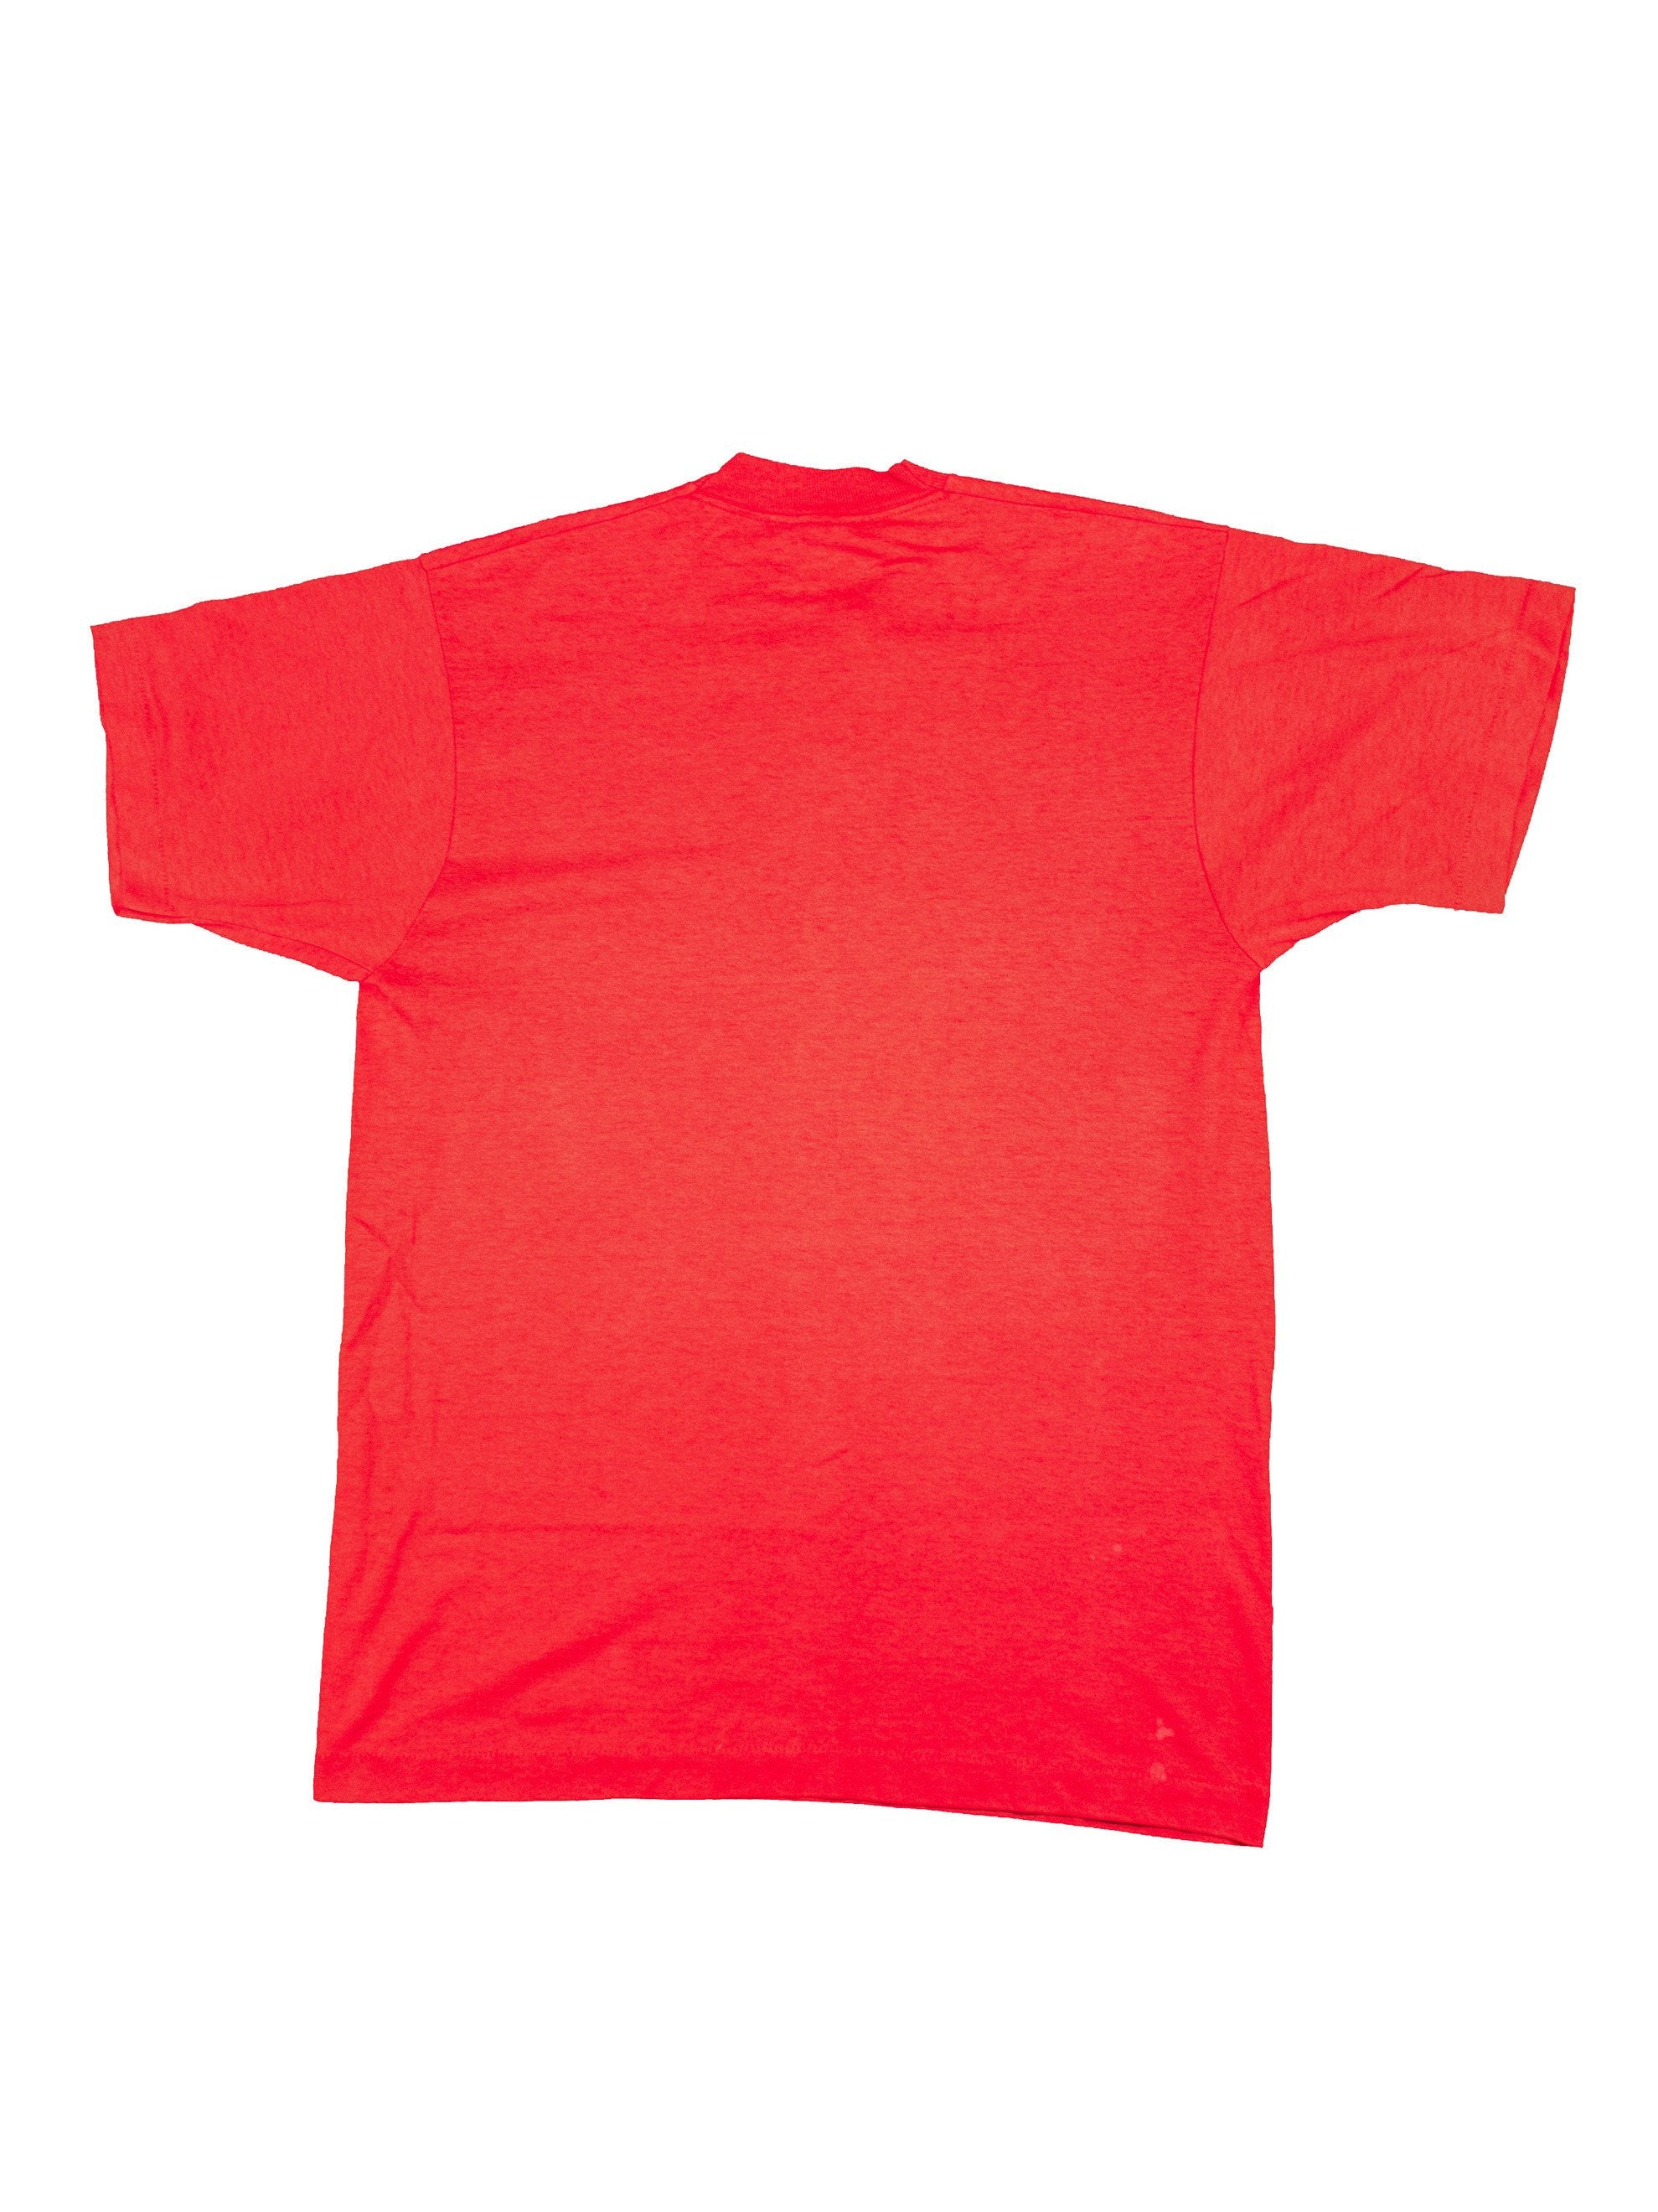 Red 1990's Imported From Africa T-Shirt 6